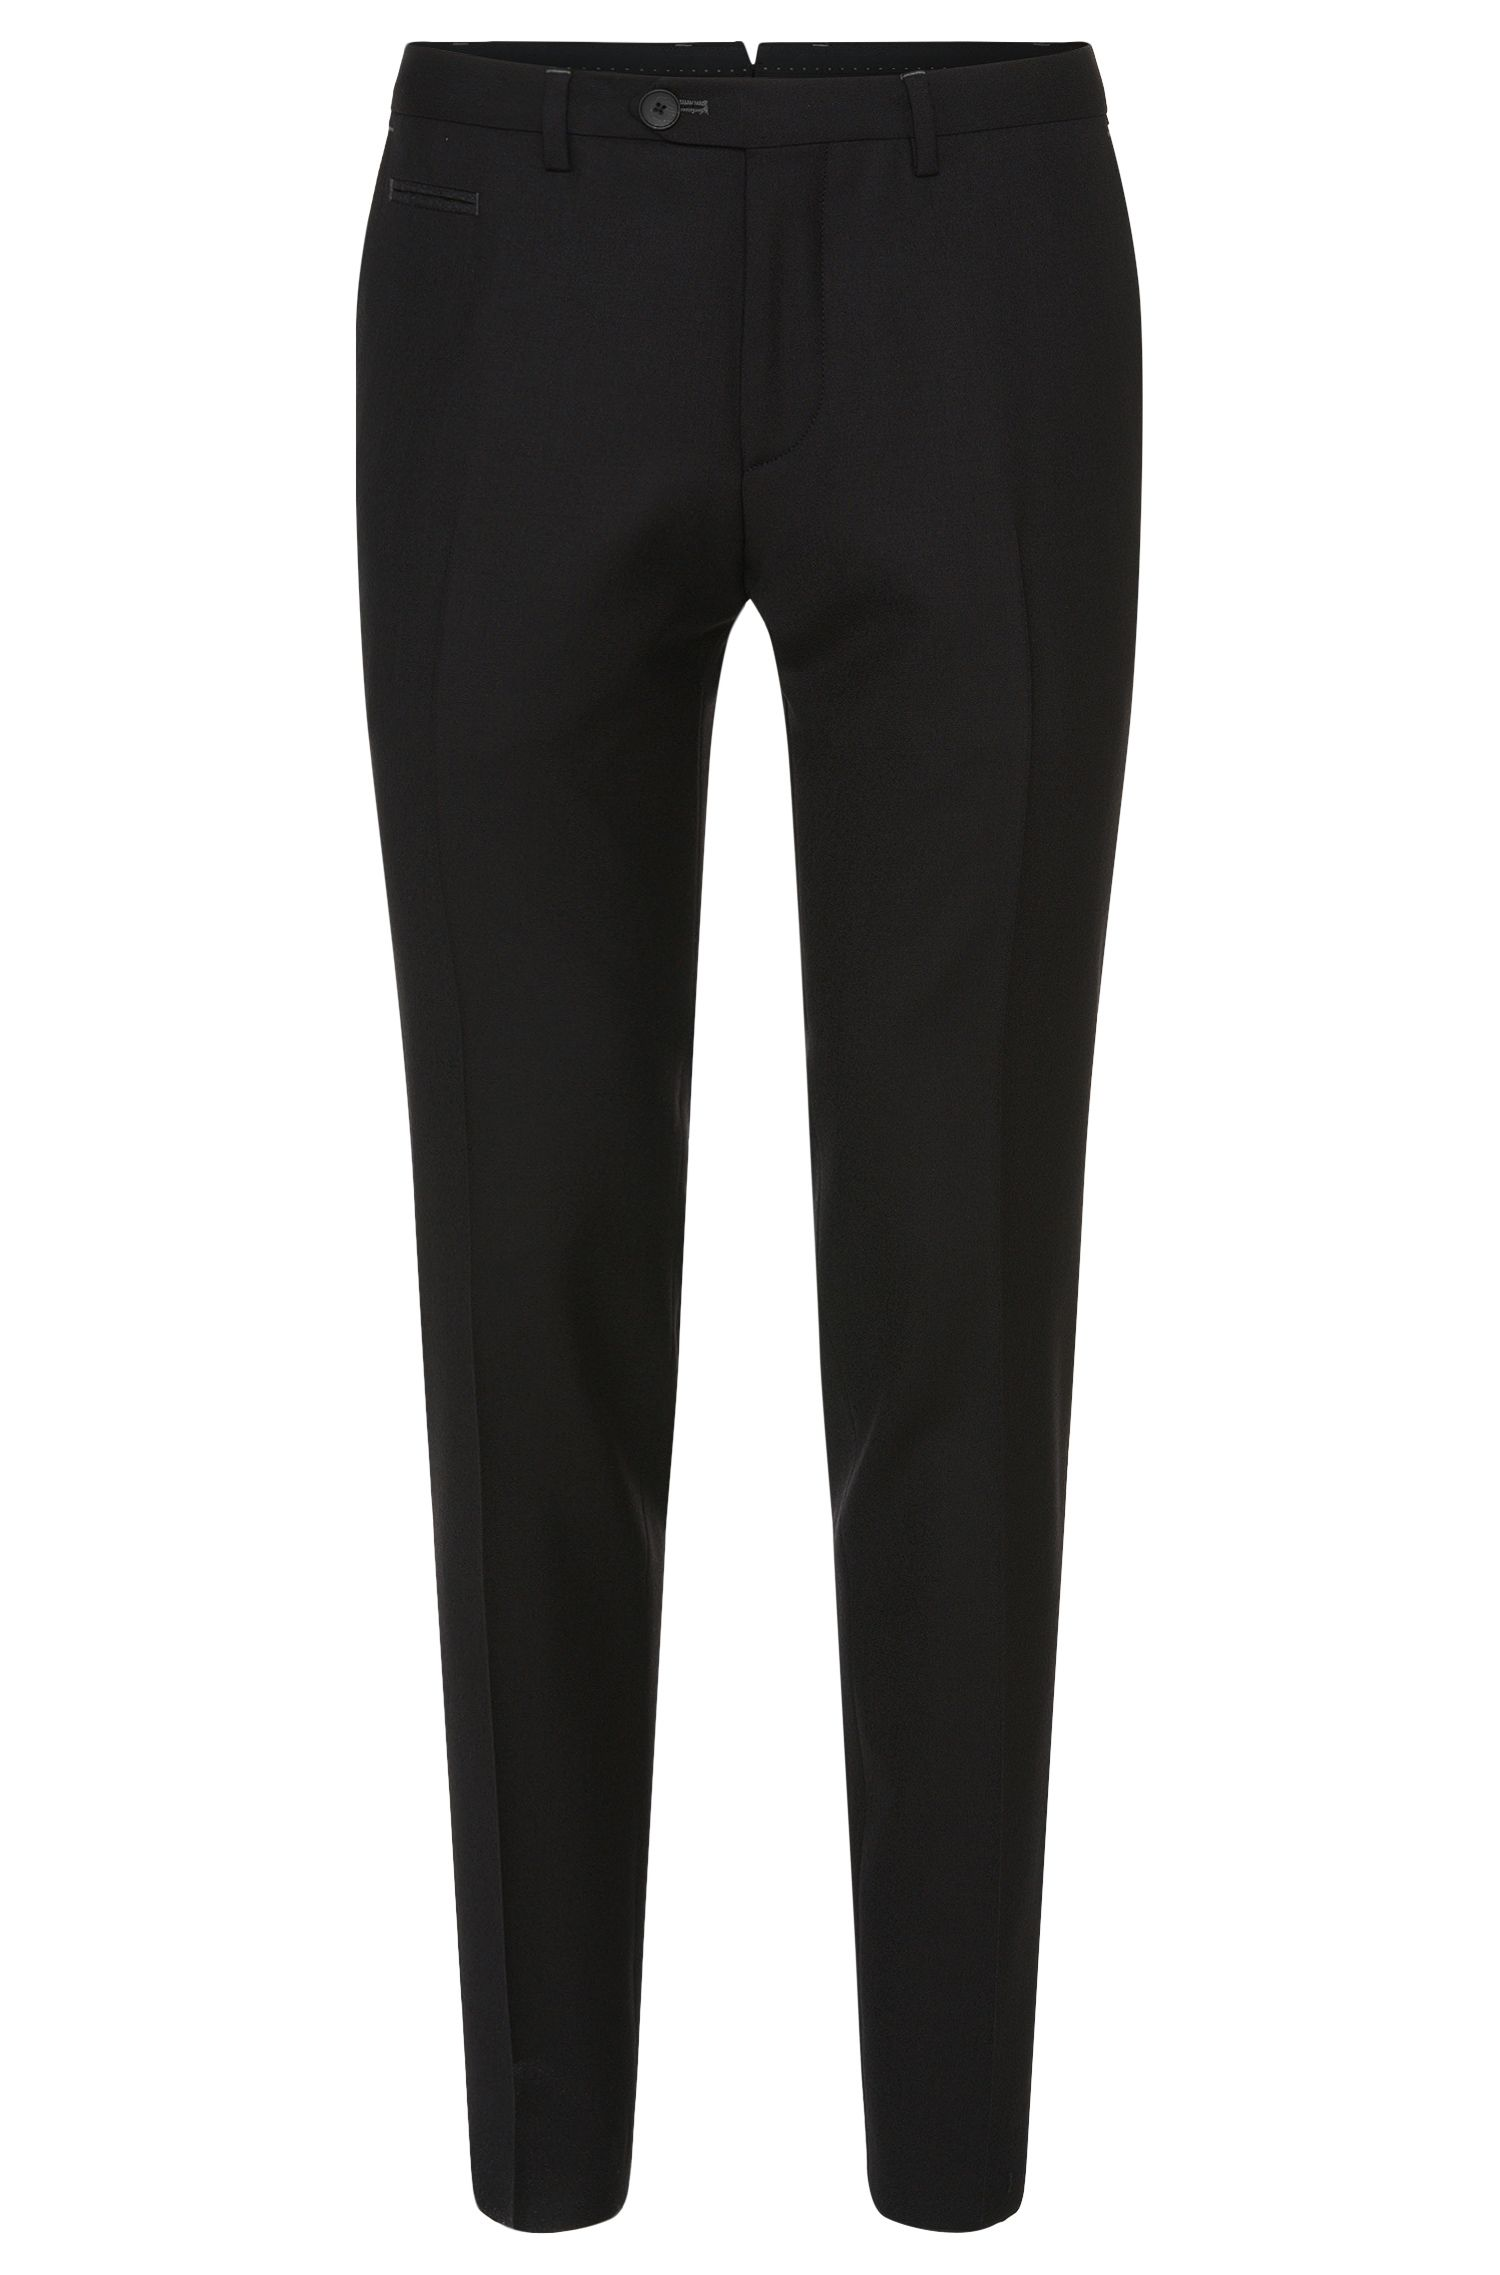 'Wilhelm' | Extra Slim Fit, Virgin Wool Dress Pants